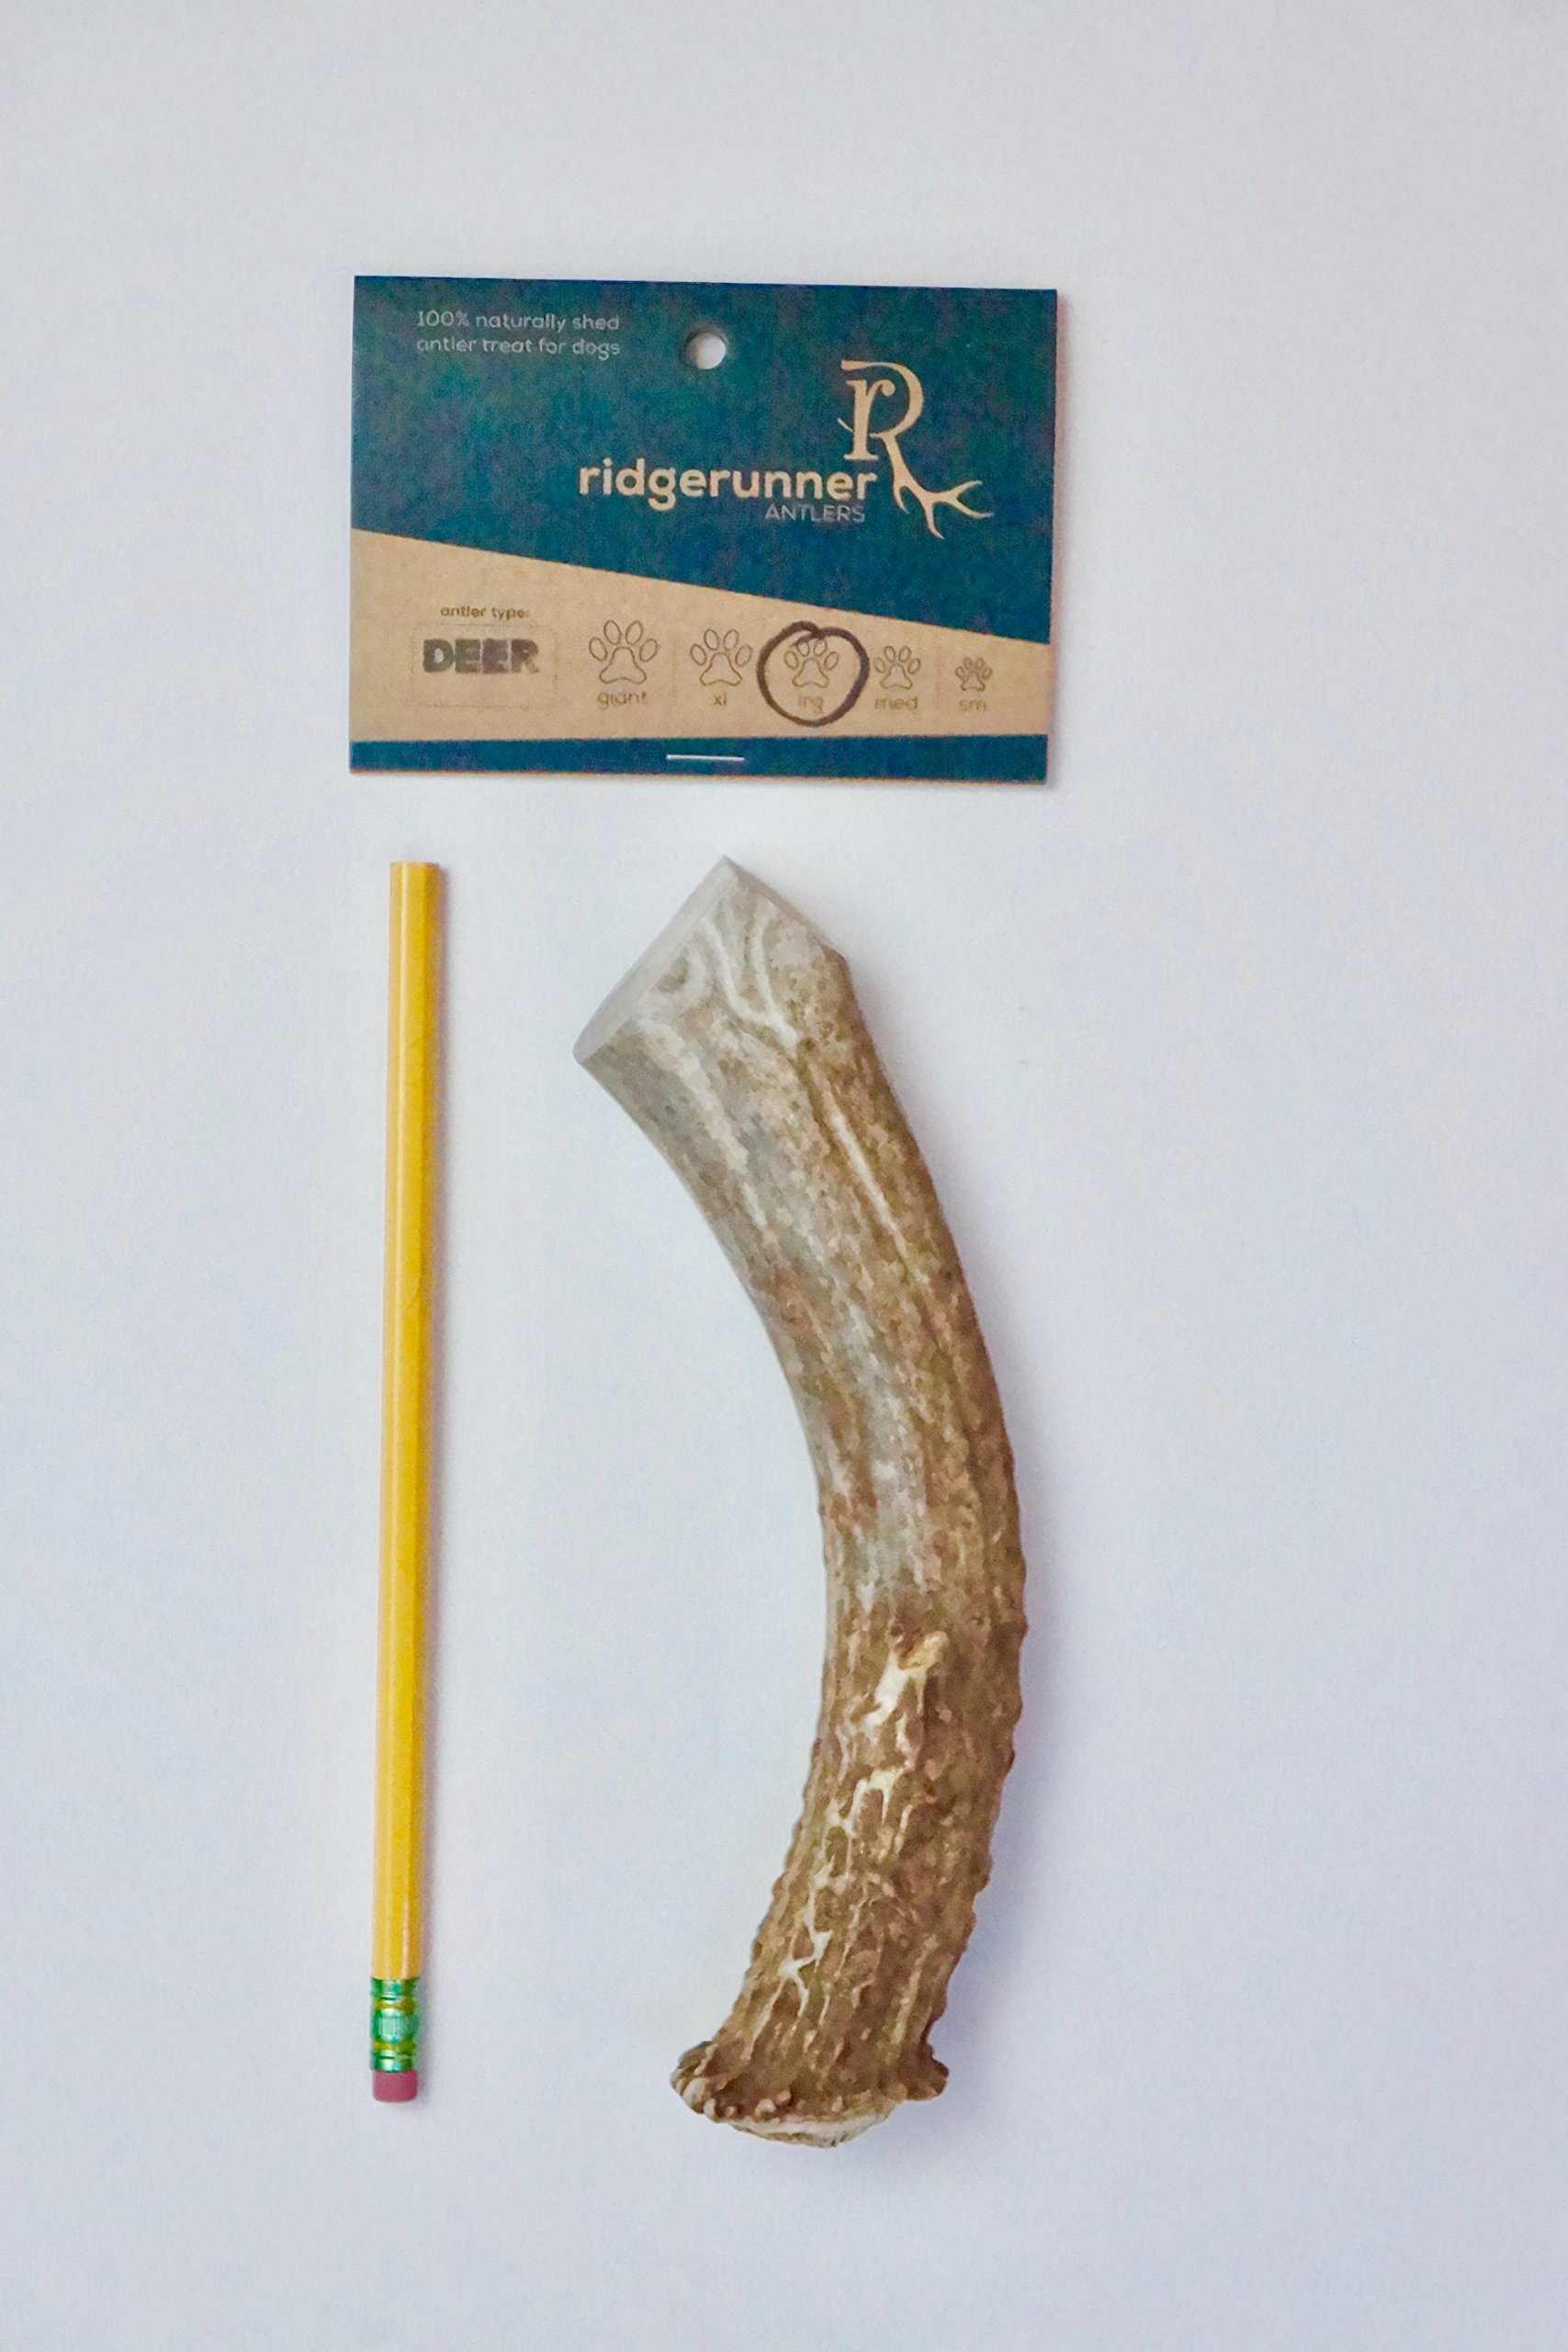 """ONE (1) Large Deer Antler Chew Bone For Dogs, 8"""" - 11, antler chews for Medium to Large dogs up to 60 pounds, Made in the USA from Wild Colorado Deer elk natural raw diet grade A premium"""